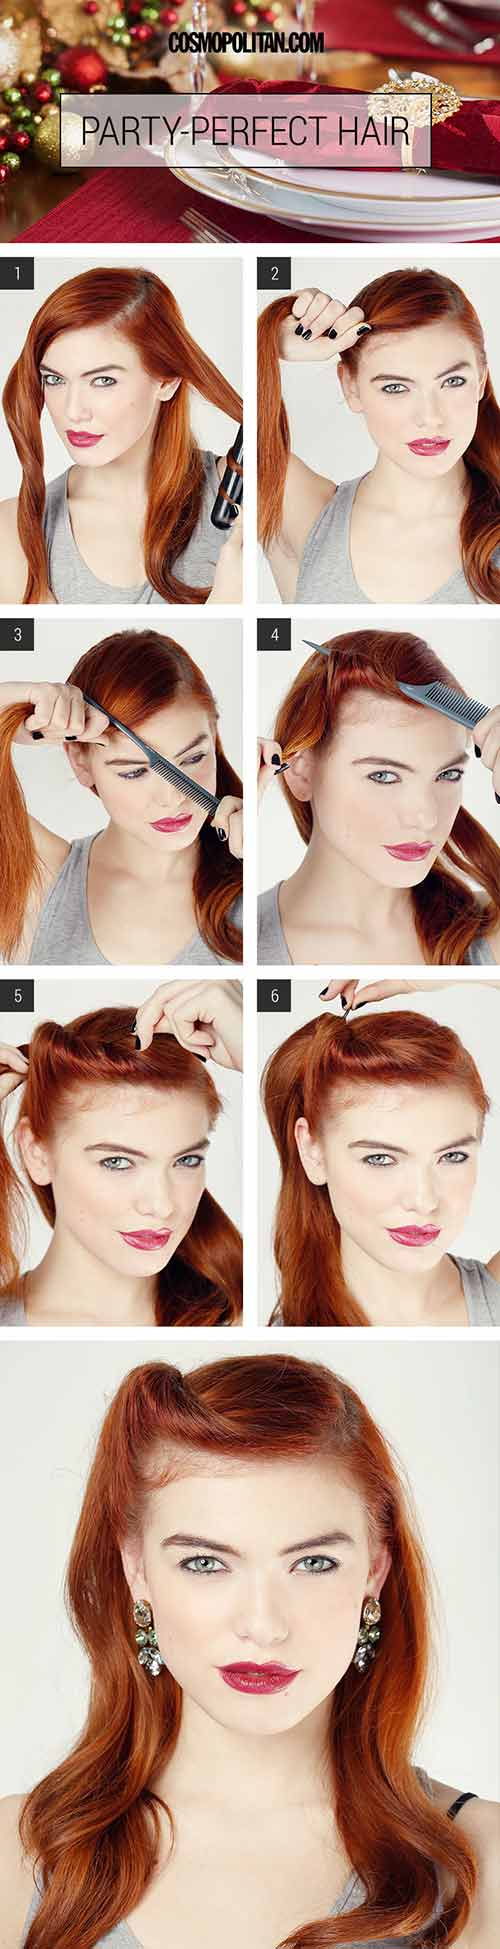 Side-Twist-Party-Perfect-Style Awesome Hairstyles For Girls With Long Hair